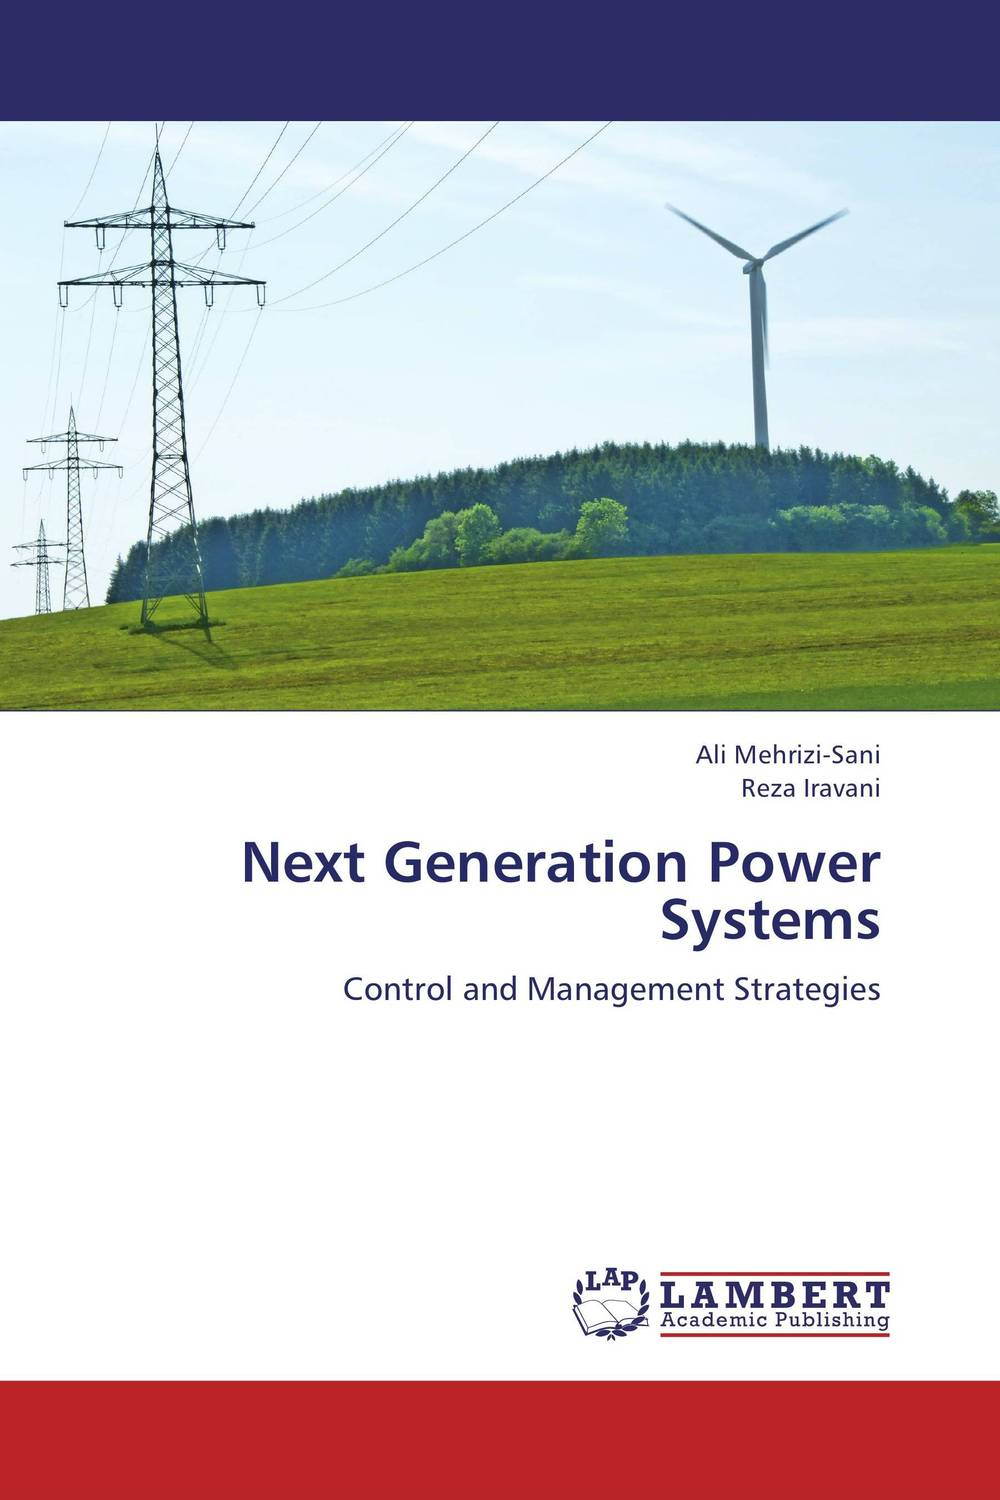 Next Generation Power Systems charles chase w next generation demand management people process analytics and technology